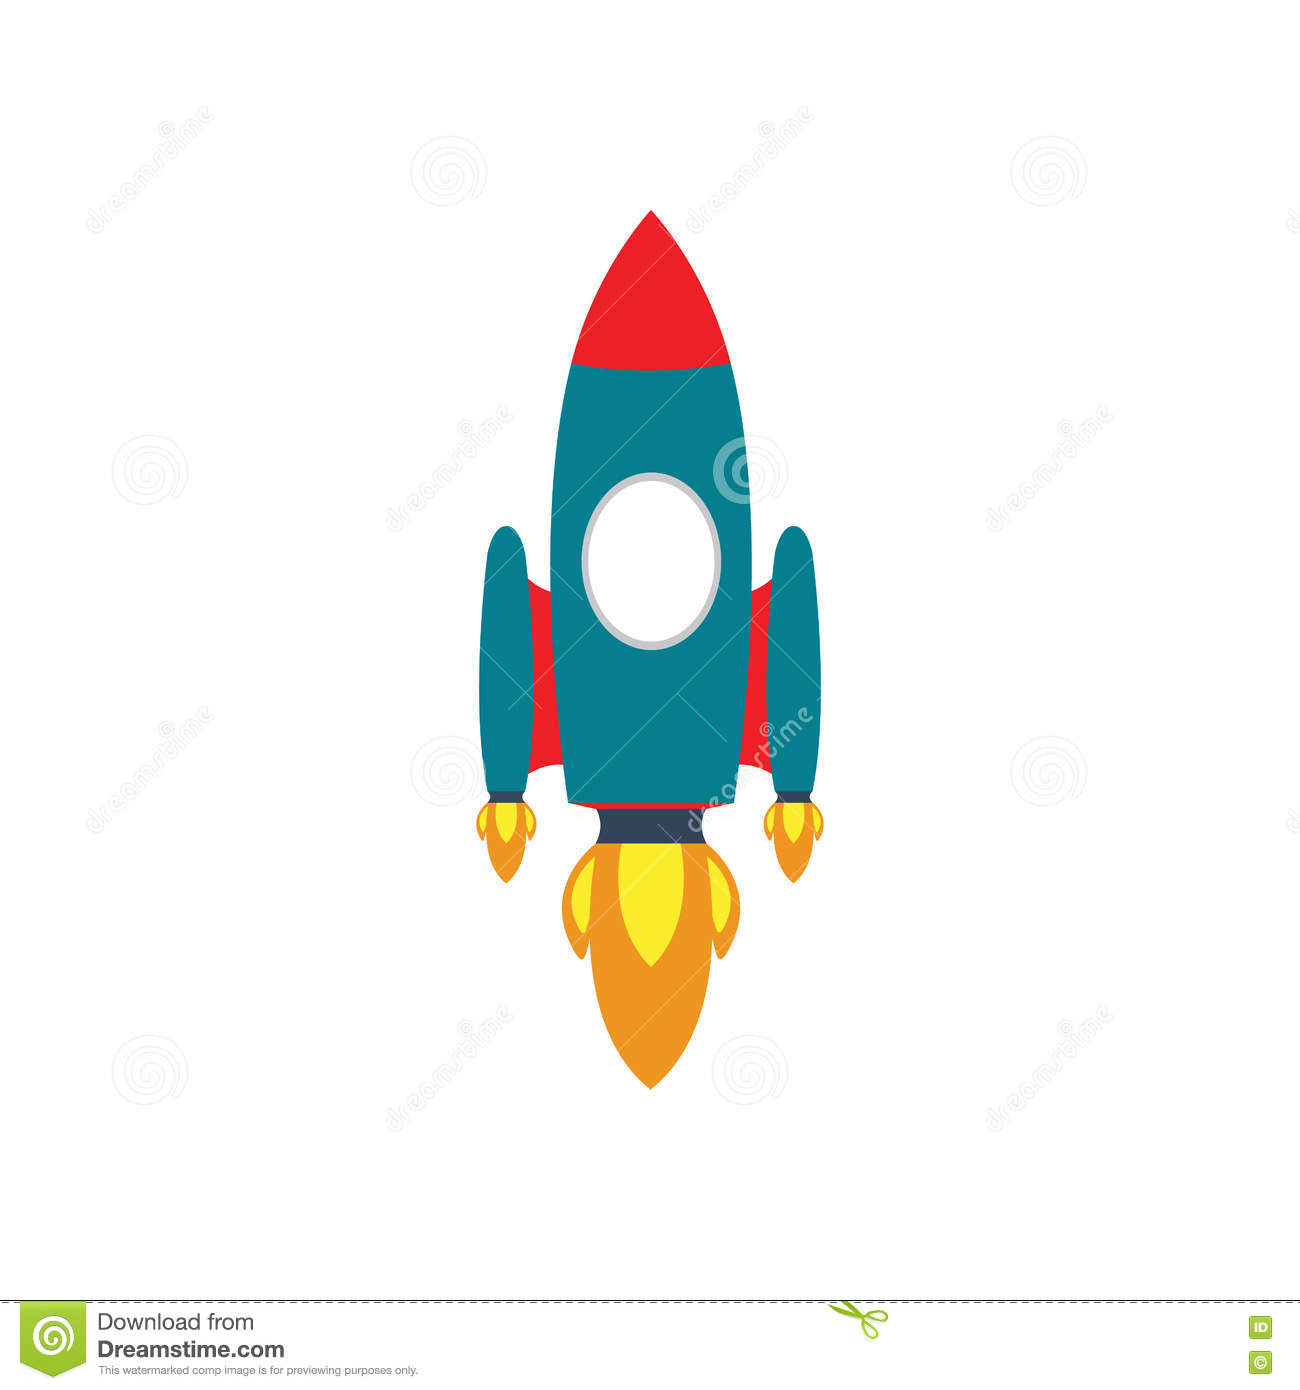 Vector Rocket Icon, Rocket Ship In A Flat Style, Project